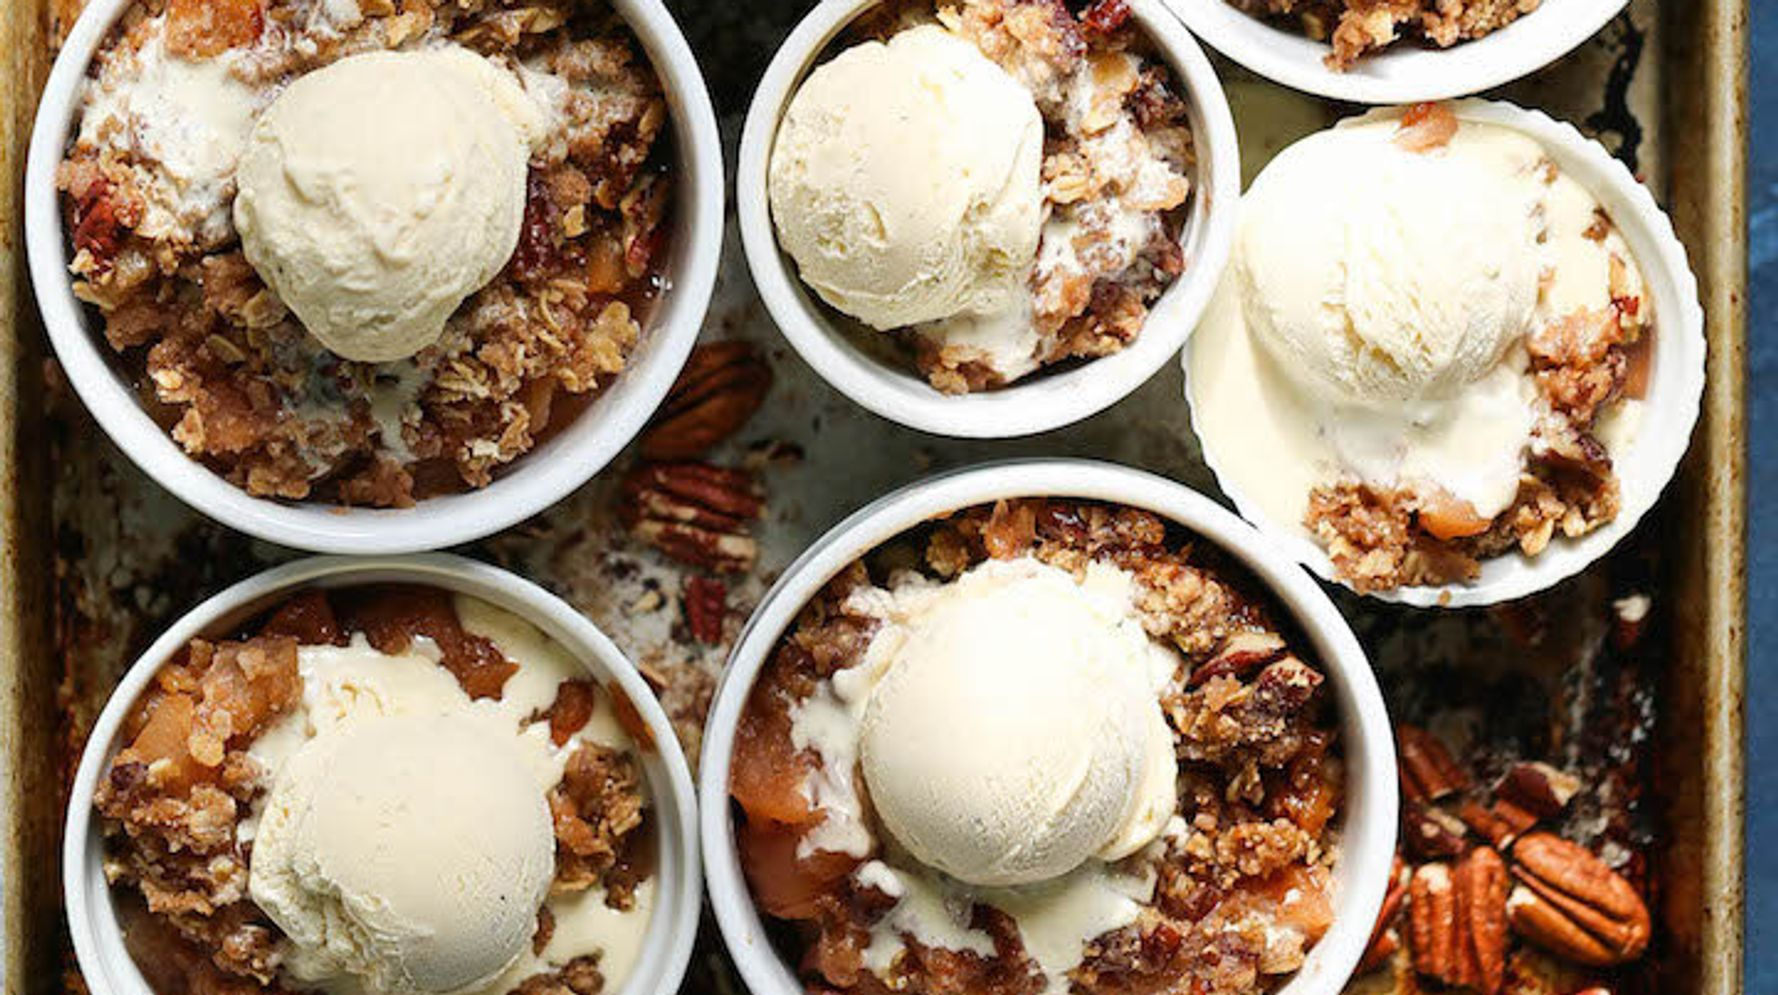 Hate Making Pie Crust? Bake These Easy Fruit Crisp Recipes Instead